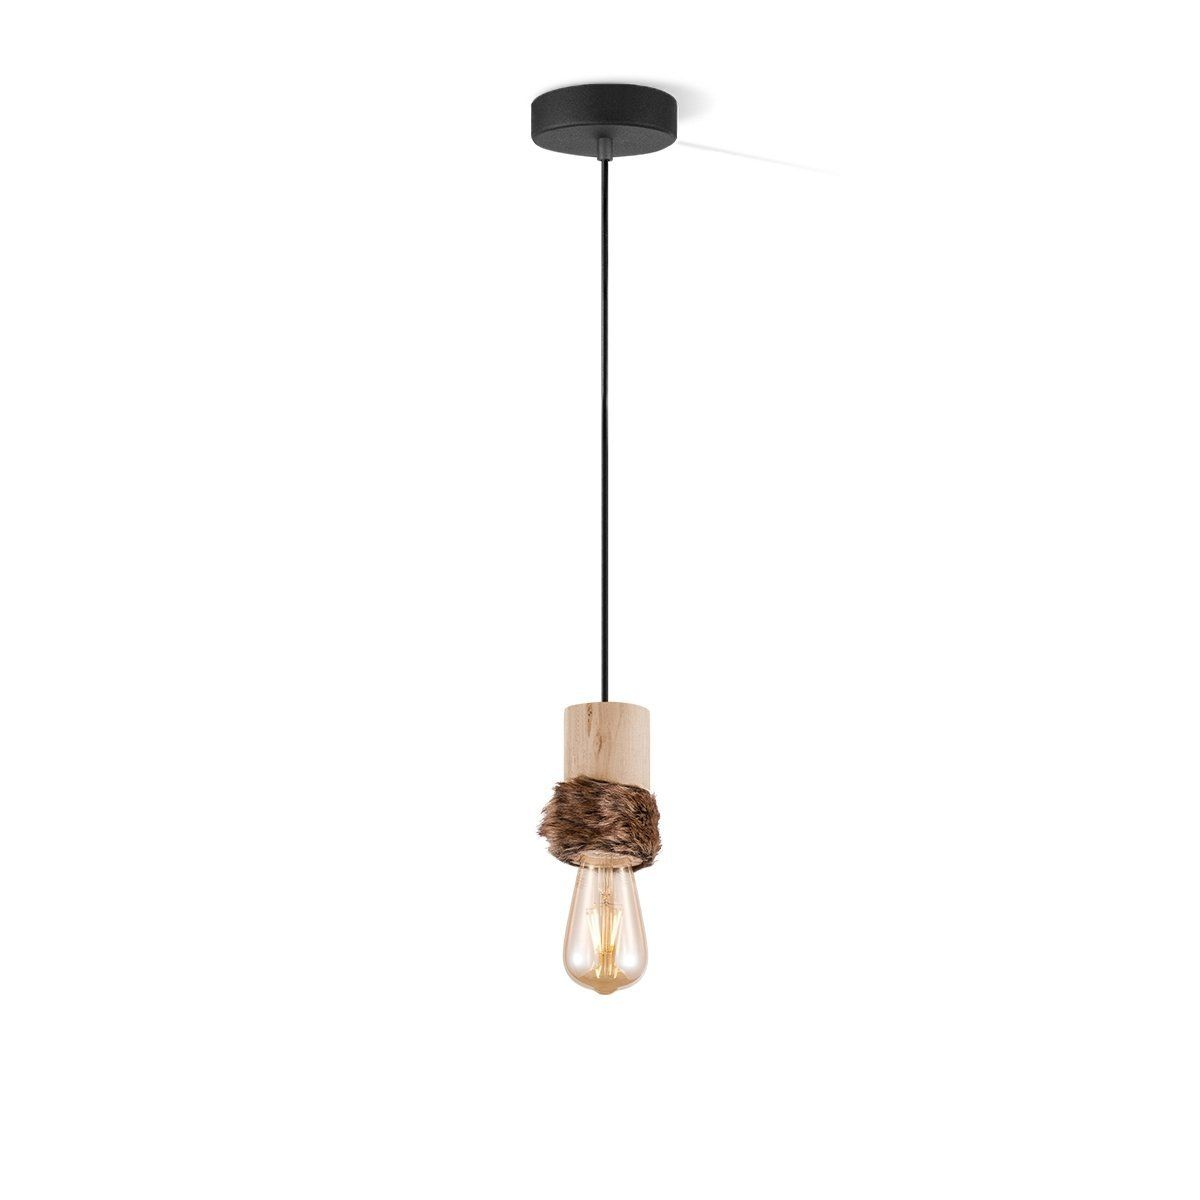 Home sweet home hanglamp Furdy small - hout